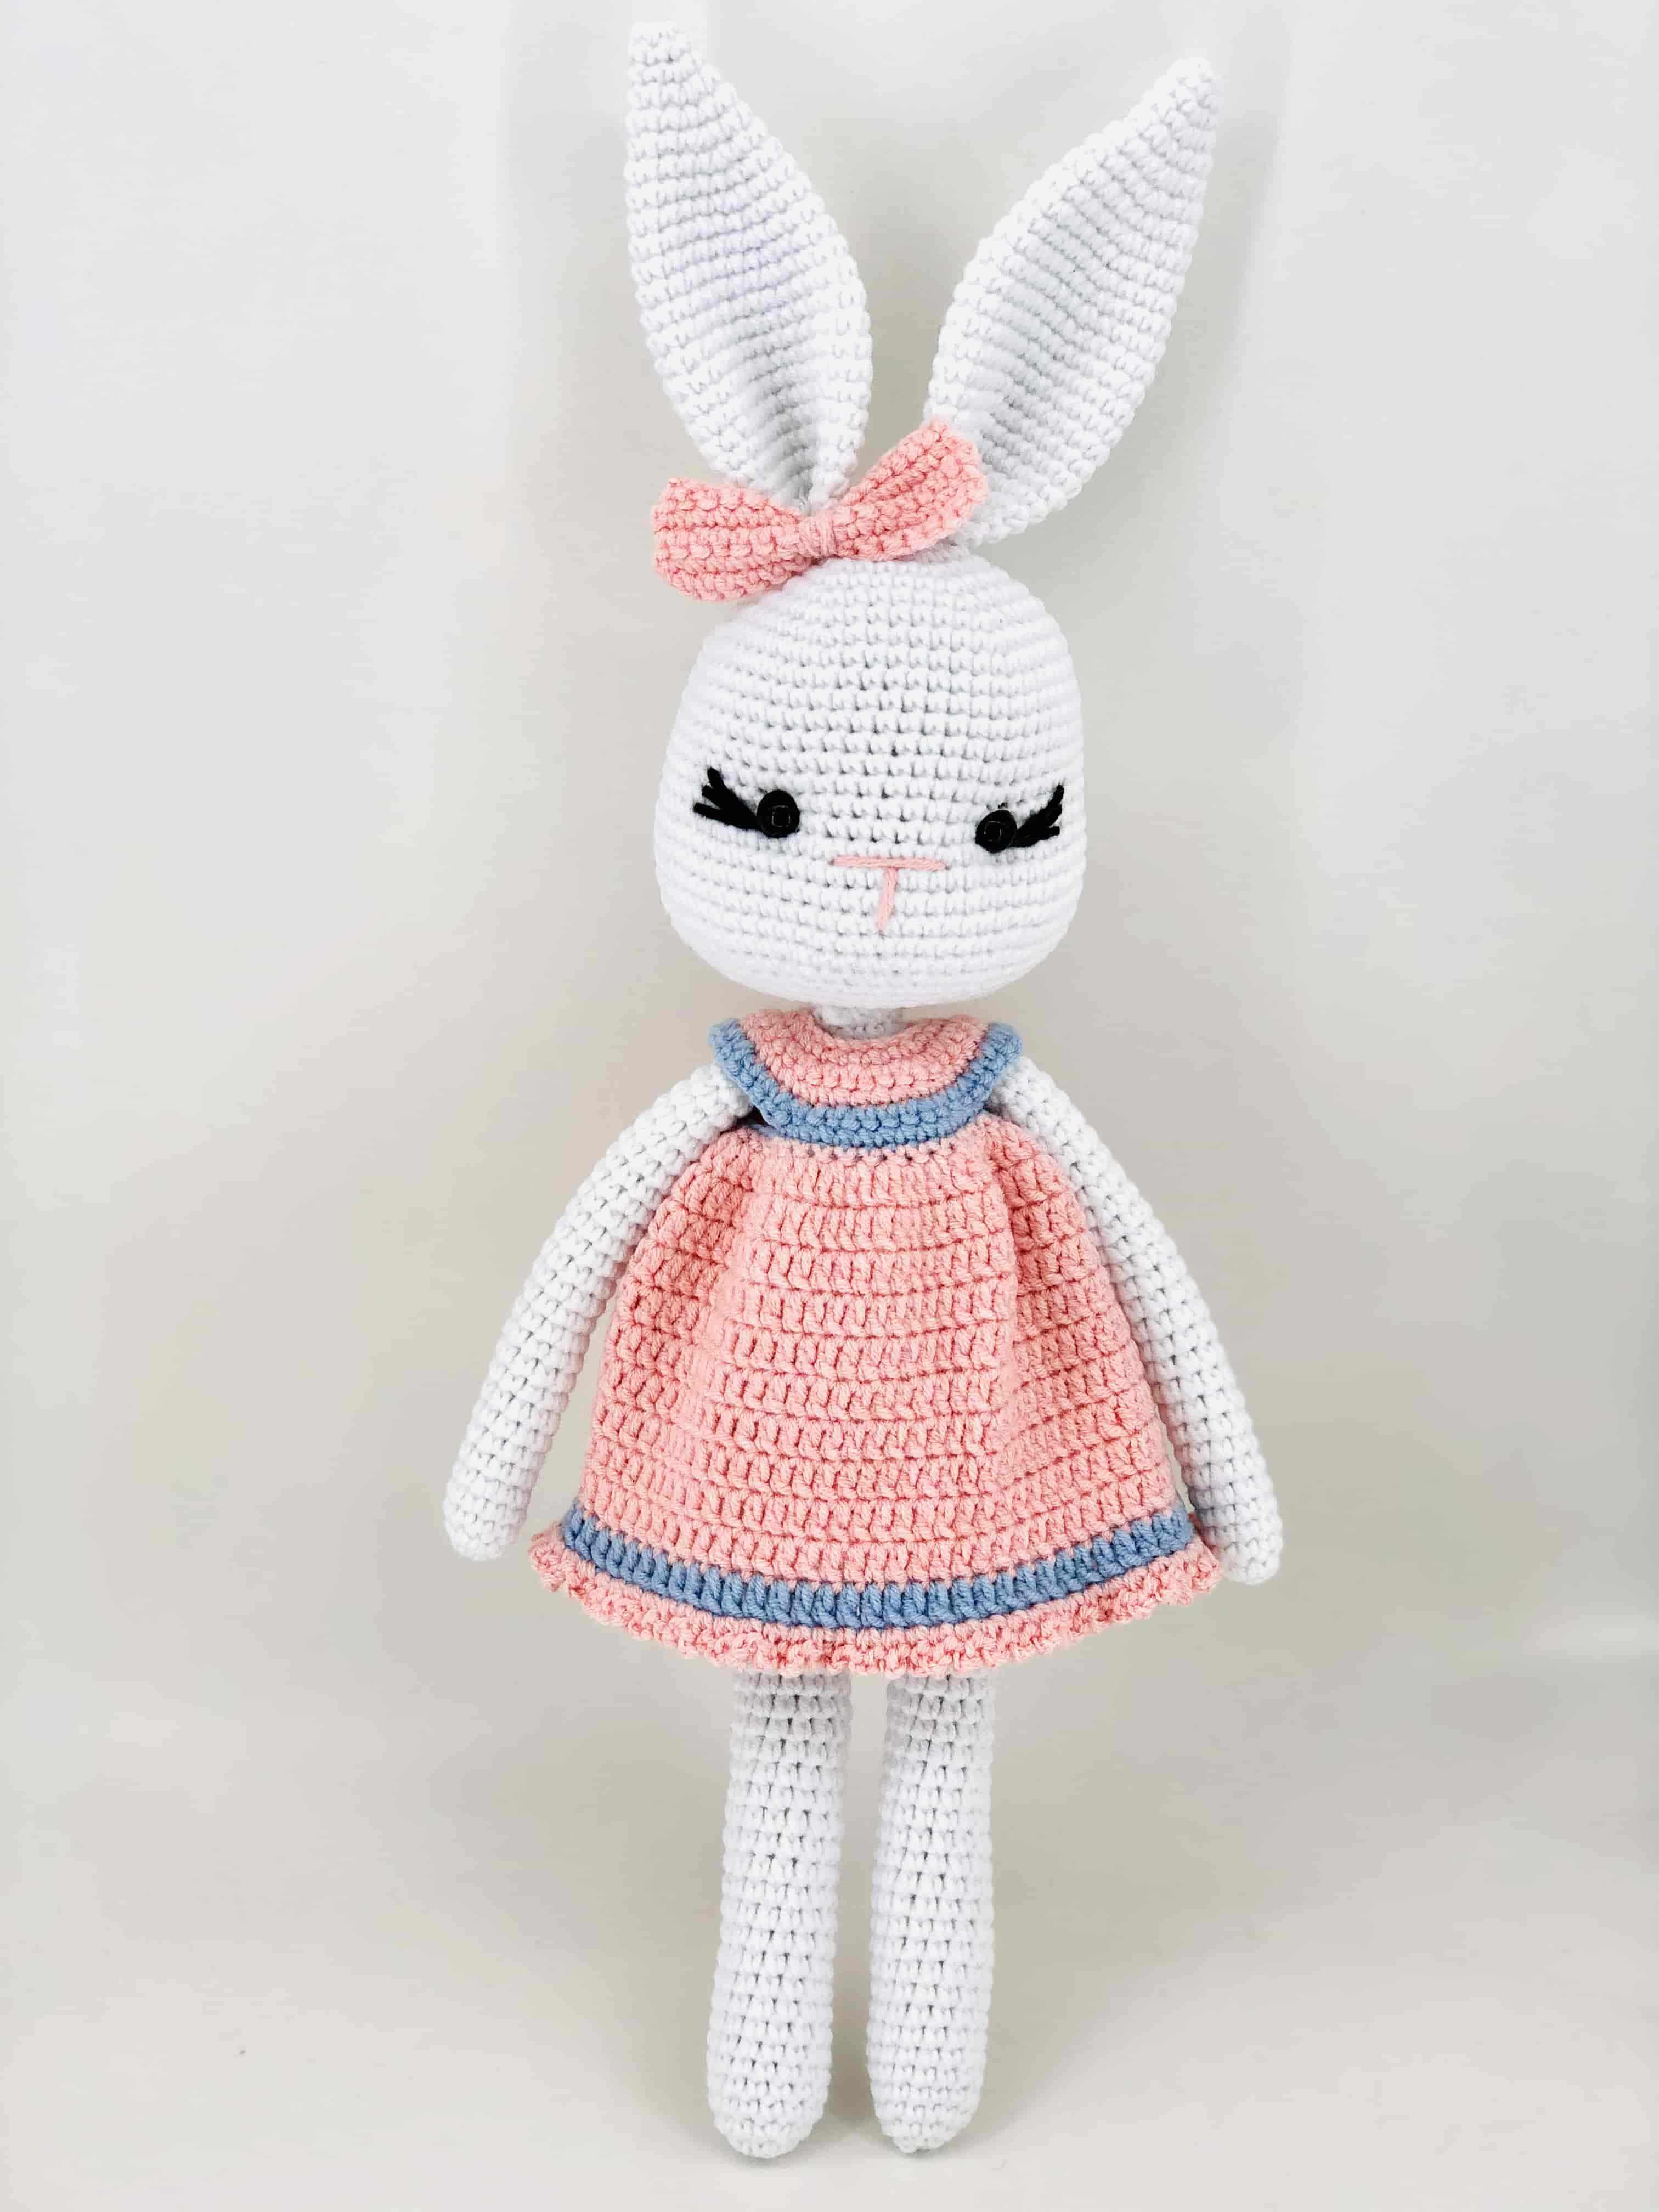 Crochet doll clothes pattern - Pink Crochet Clothes Pattern for ... | 4032x3024